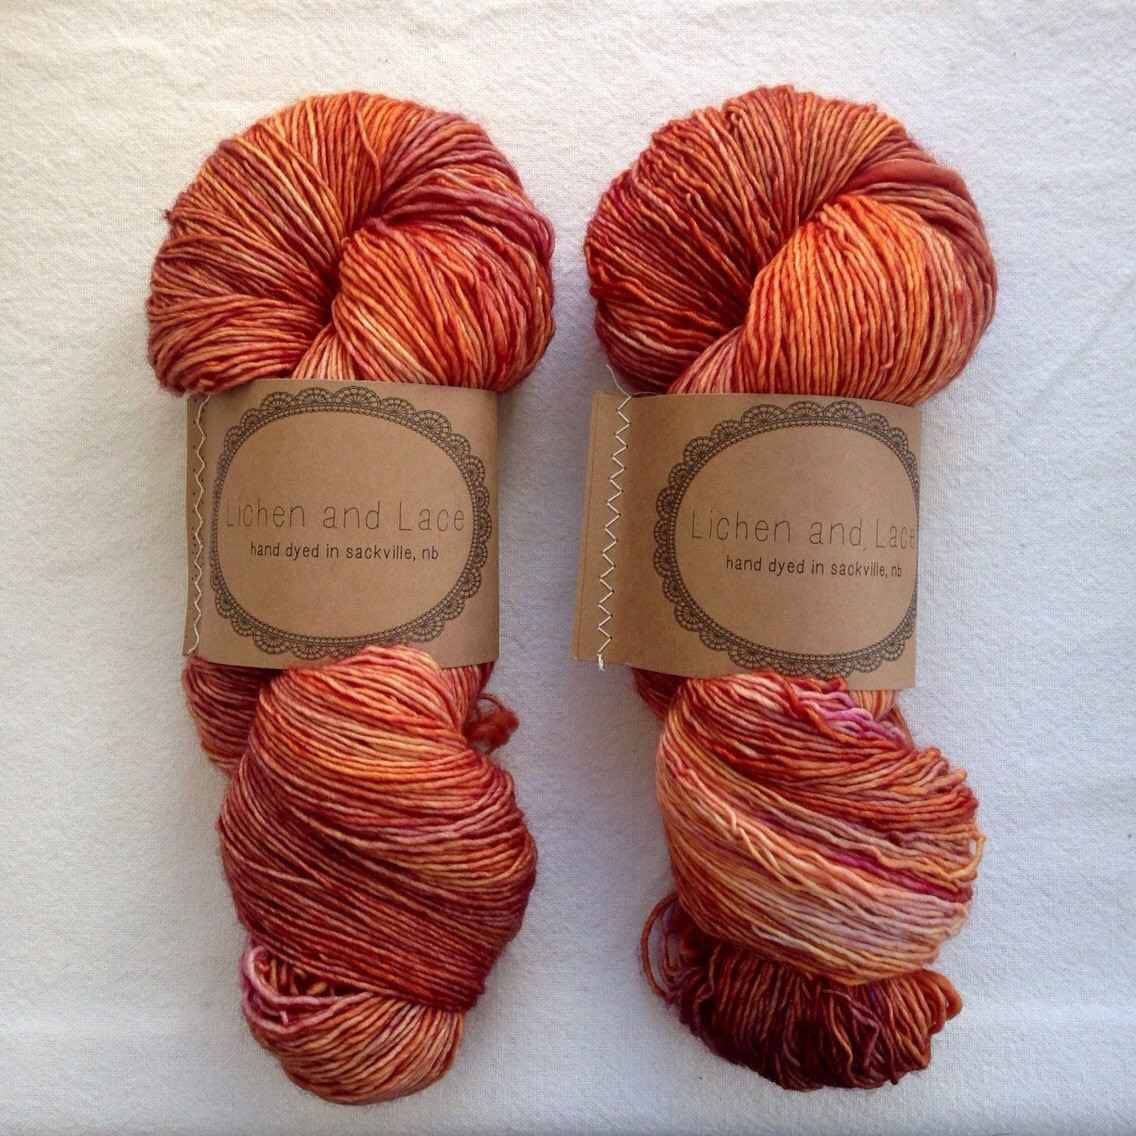 Lace Yarn Inspirational Day Lily Lichen and Lace Hand Dyed Yarn Of Amazing 44 Pictures Lace Yarn